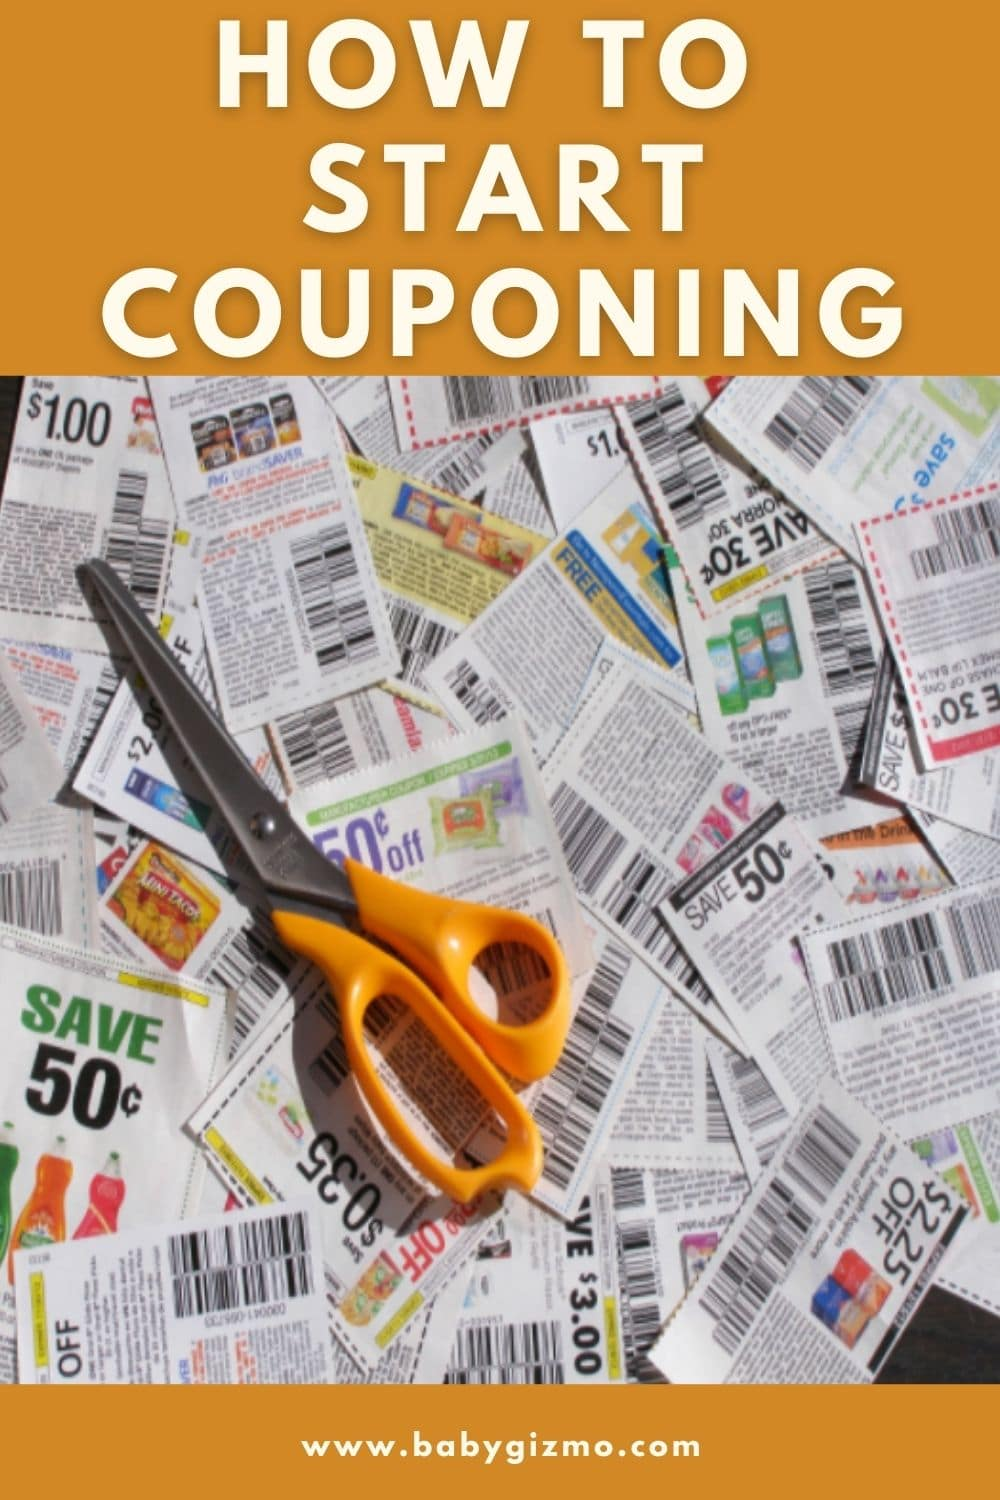 coupons with a scissors